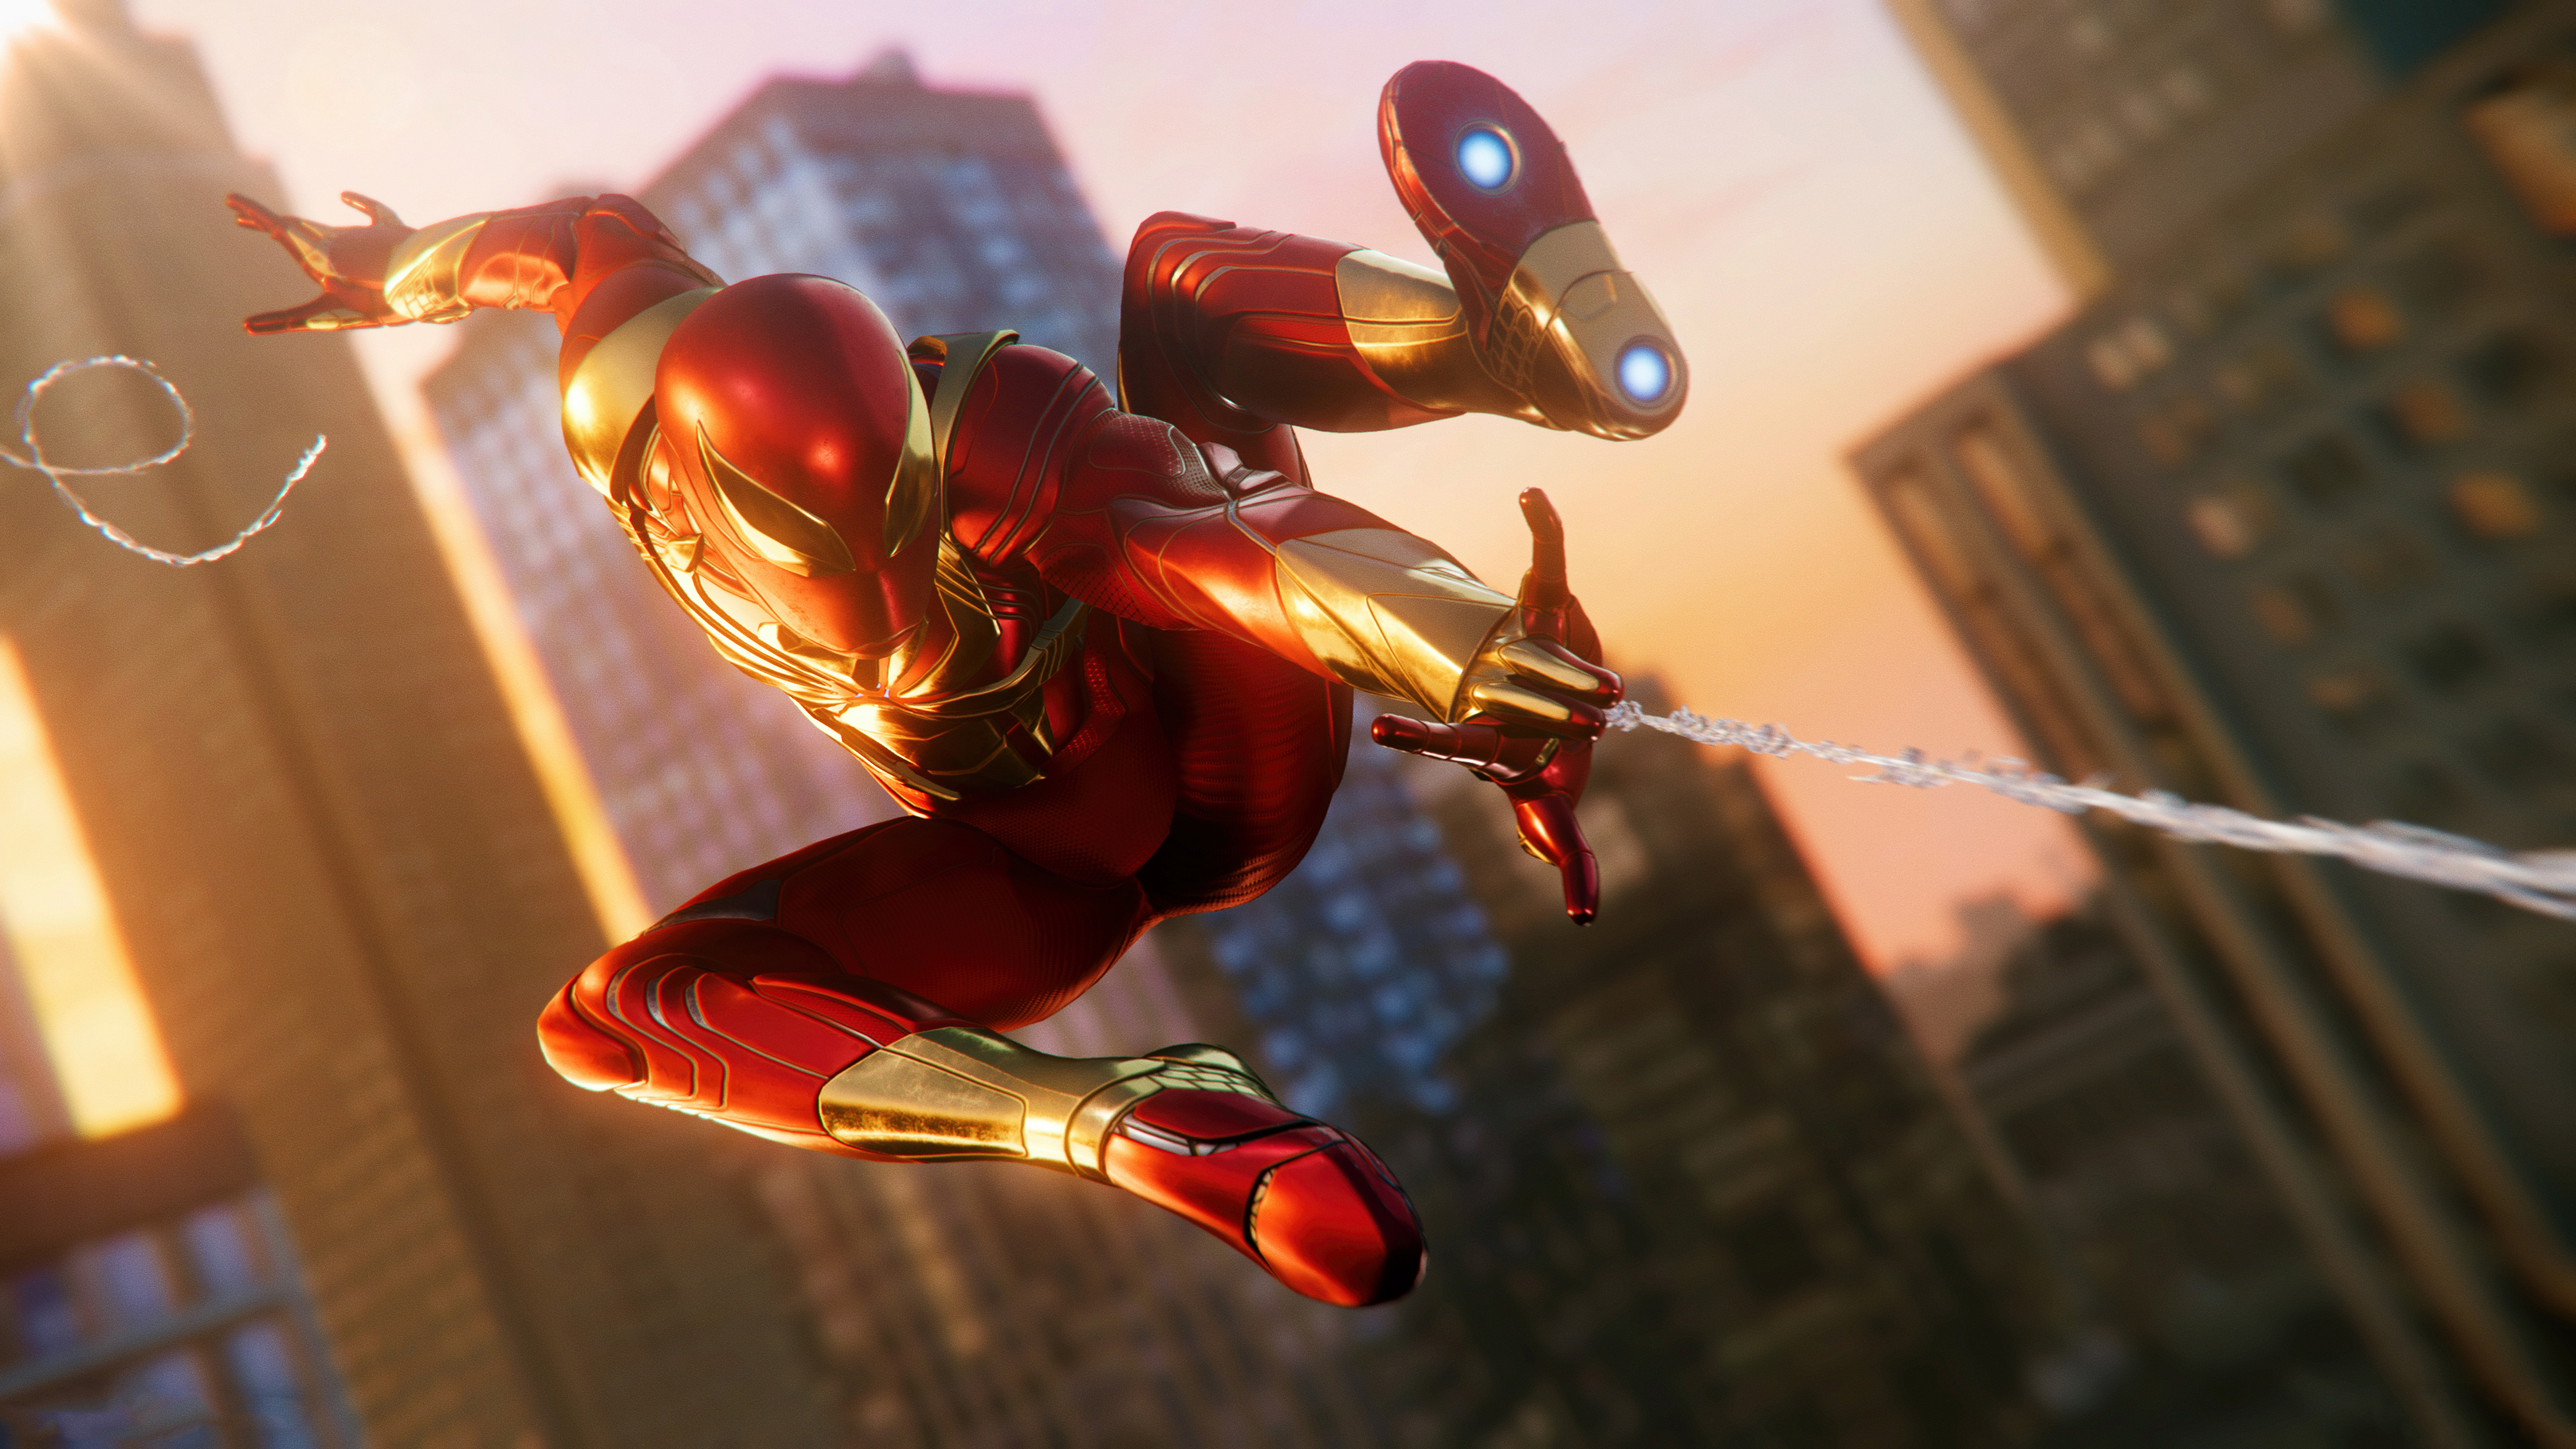 Wallpaper 4k Marvels Spider Man Turf Wars 4k 2019 Games Wallpapers